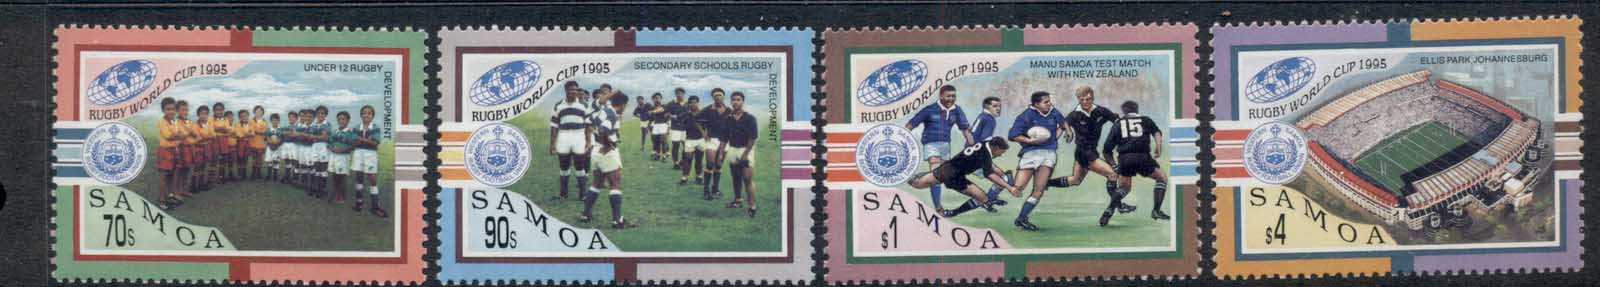 Samoa 1995 World Rugby Cup MUH